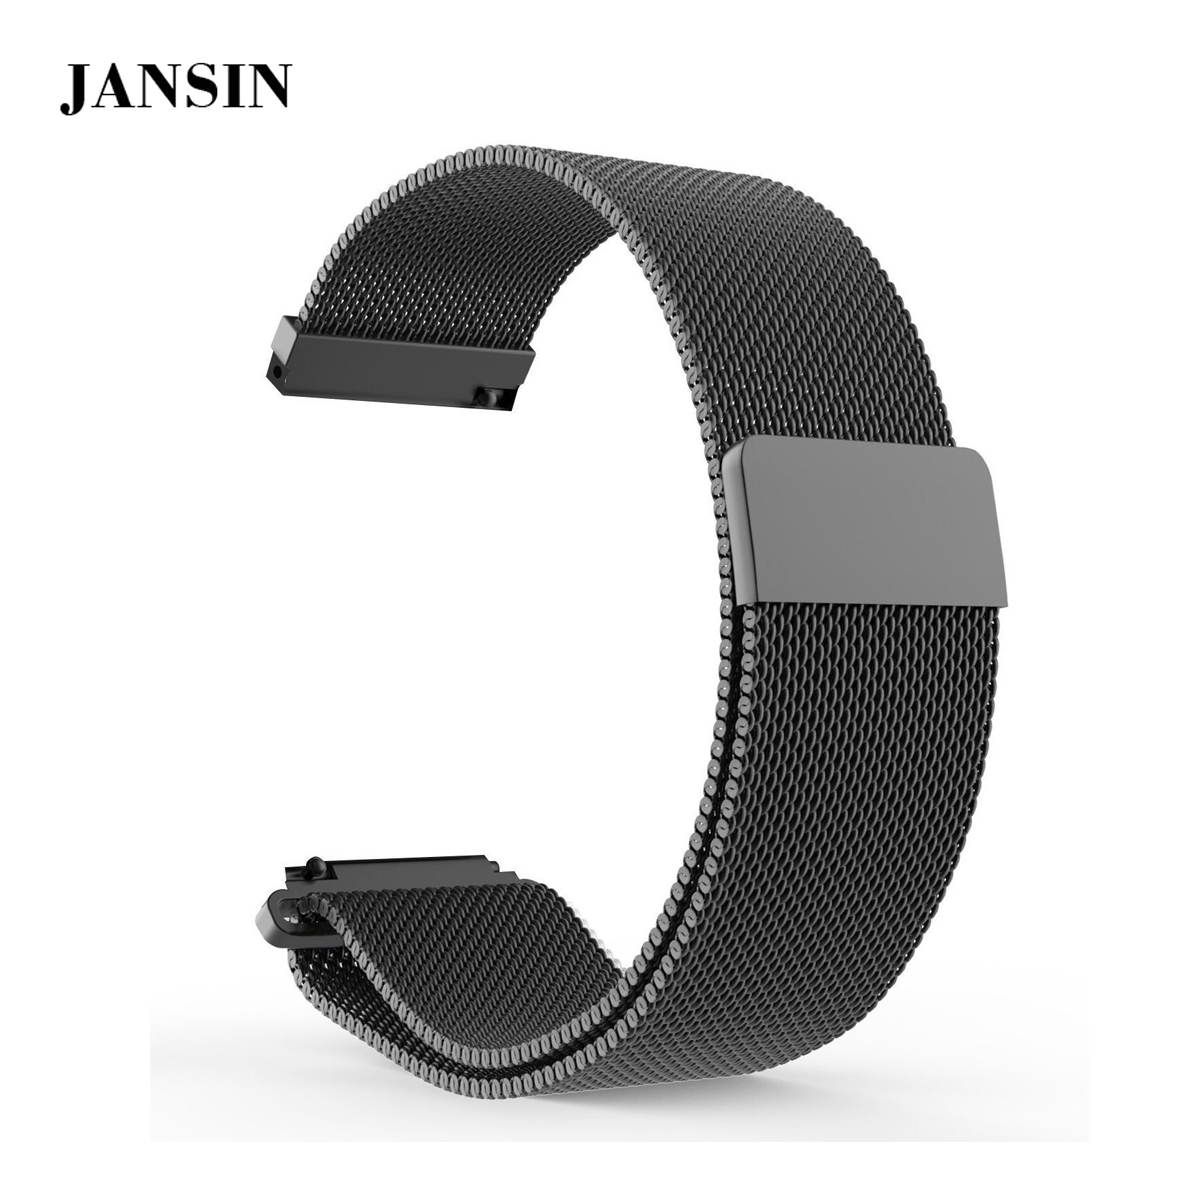 JANSIN 22mm Milanese Replacement Universal WatchBand Strap for Samsung Gear S3 /ASUS /Moto 360 / Huawei /LG /Pebble Time Steel